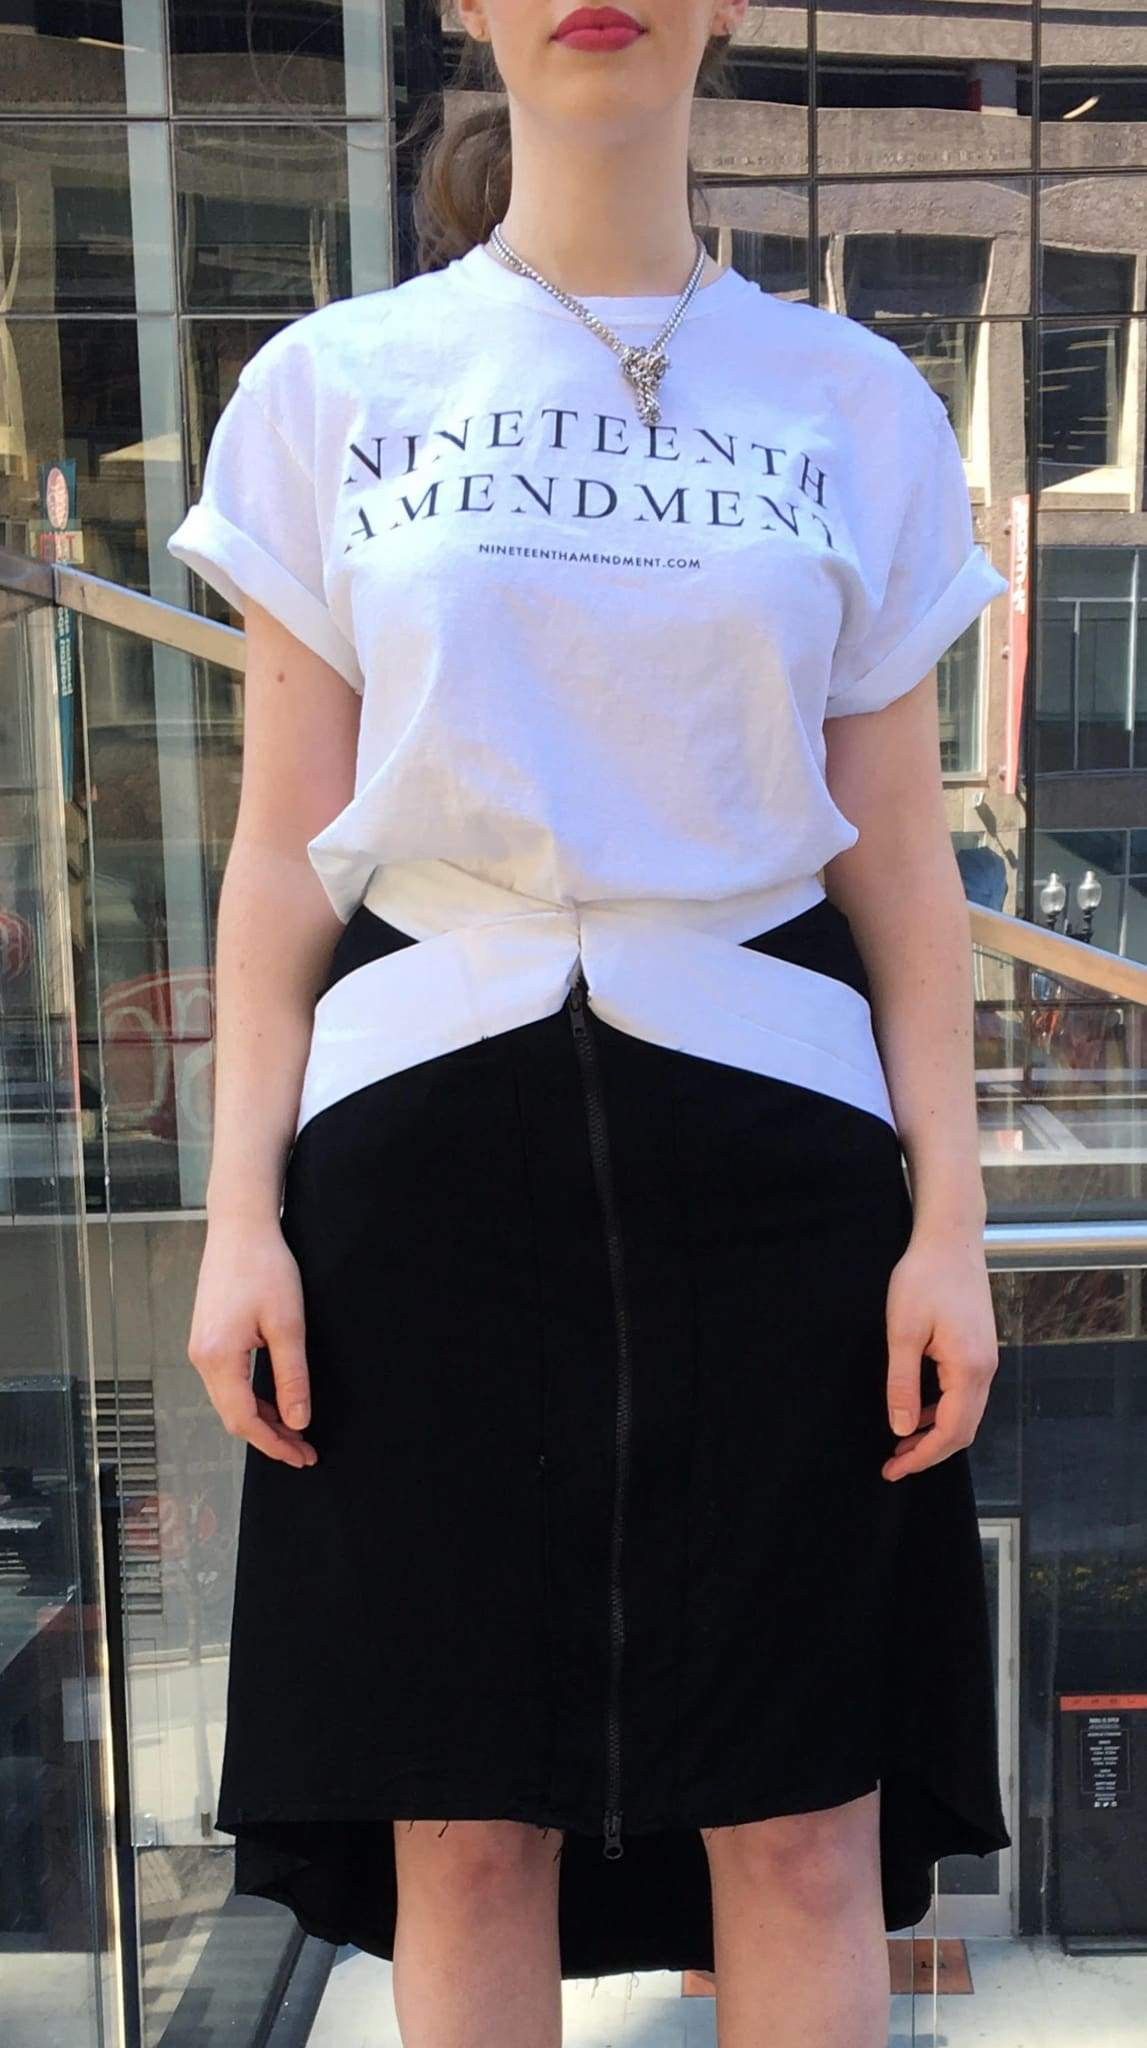 19th Amendment Person T-Shirt by Amanda Curtis Designs White T-Shirt front with Nineteenth Amendment logo